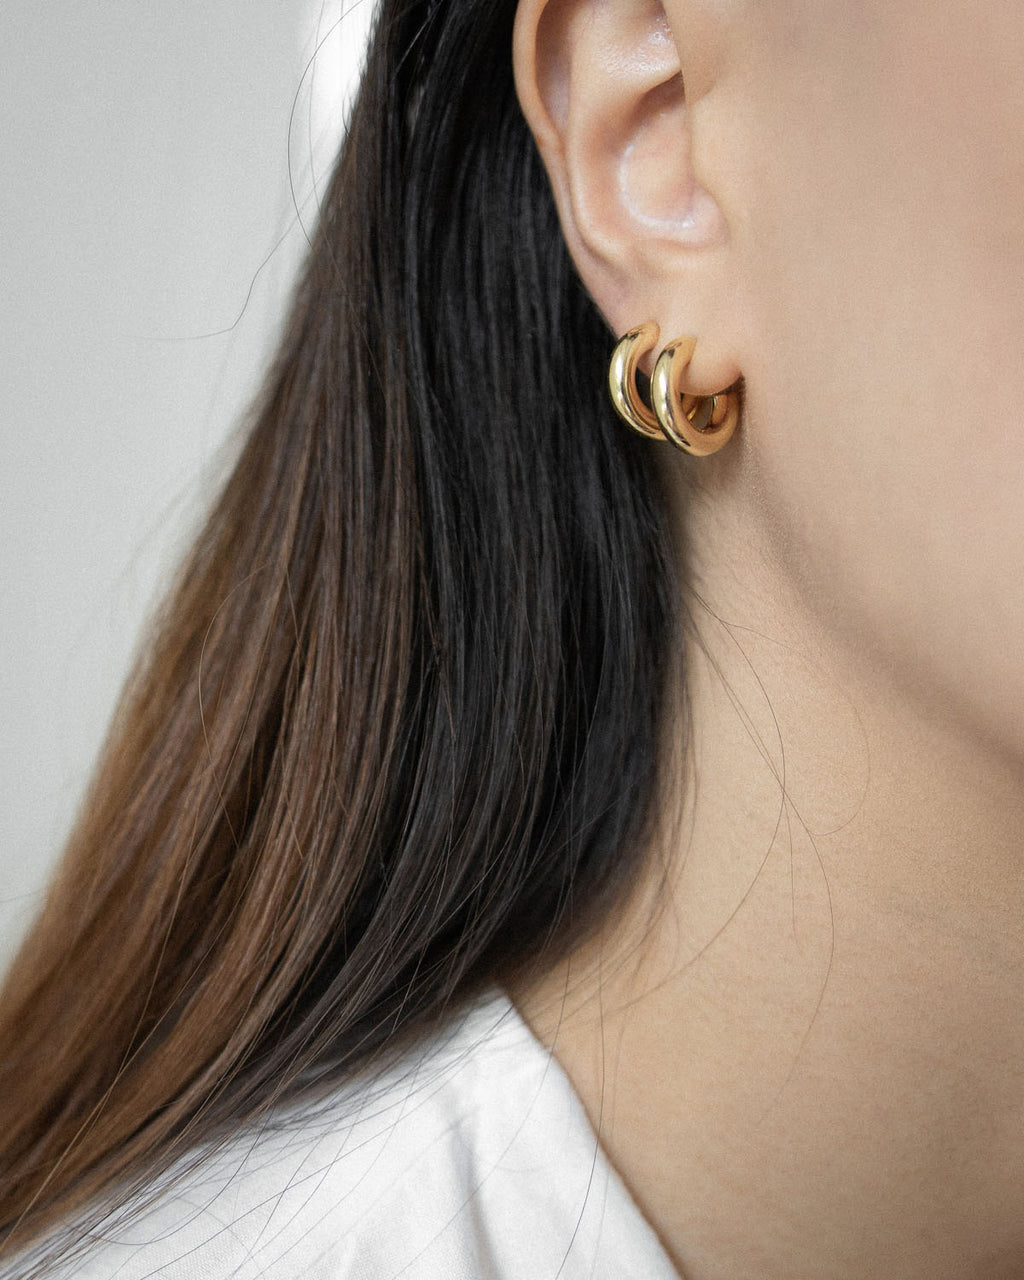 Gold-plated thick hoop earrings for everyday wear - The Hexad Jewelry